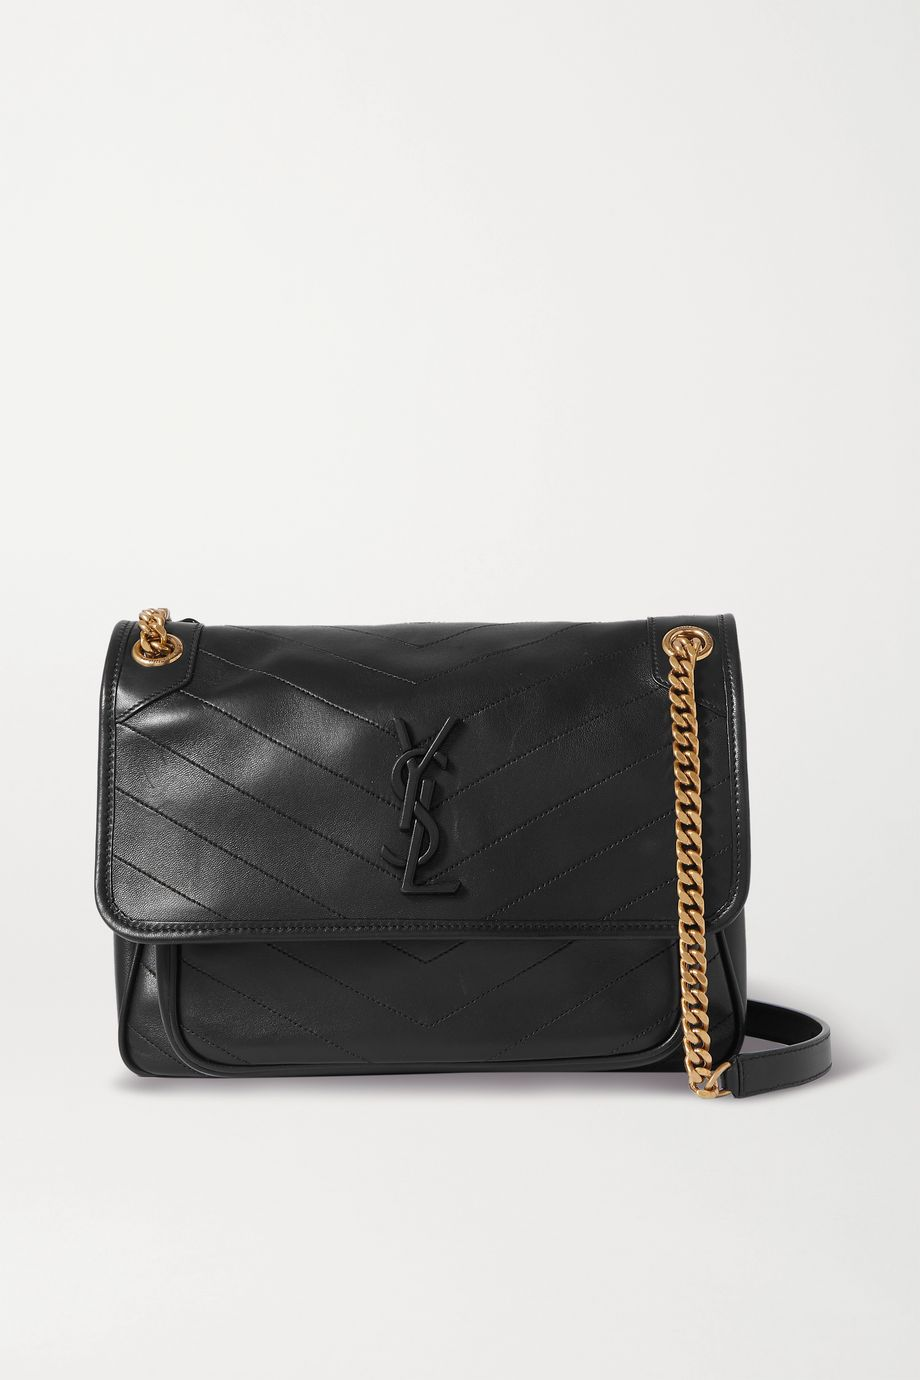 SAINT LAURENT Niki medium quilted leather shoulder bag